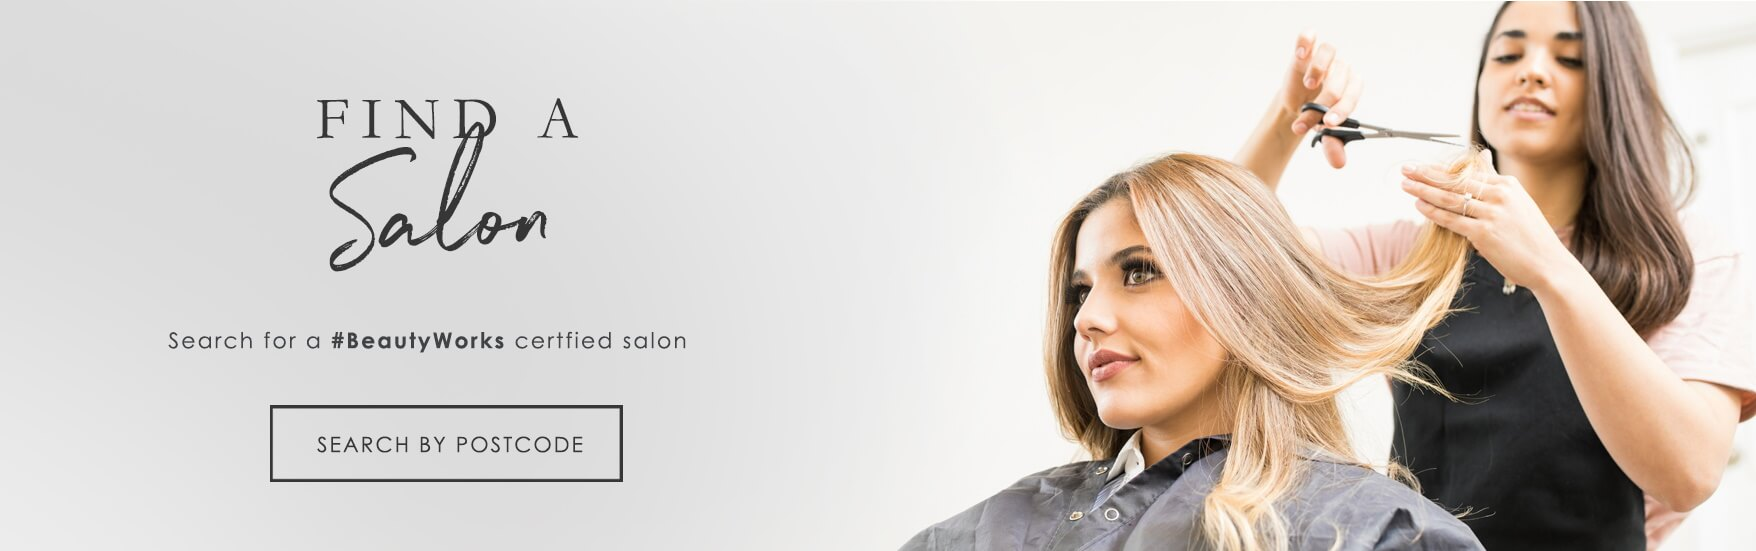 Find a Beauty Works Salon or Stylist